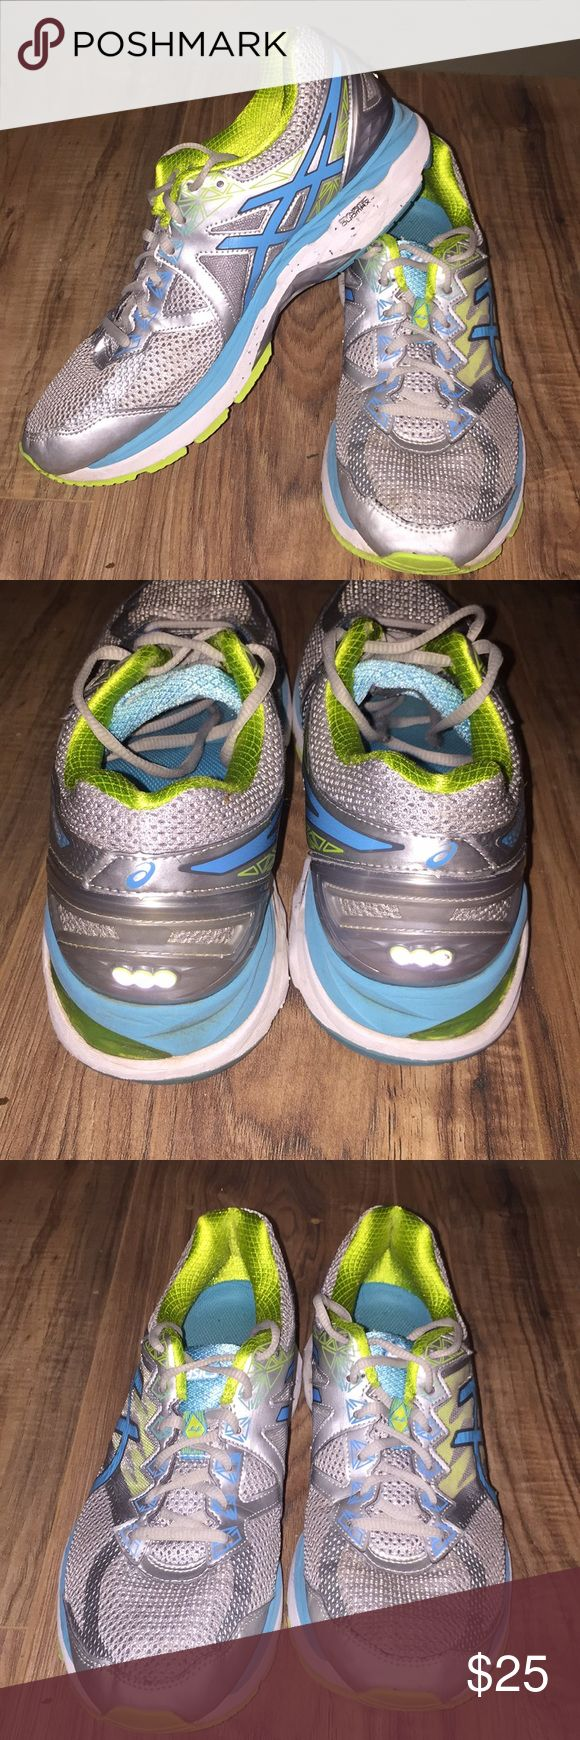 Women's ASICS FluidRide Shoes Size 10! Nice pair of Women's ASICS Shoes, size 10, style: T658N. Very little signs of wear. Great for running/walking! We accept reasonable offers and ship quickly! Thanks for looking! Asics Shoes Athletic Shoes